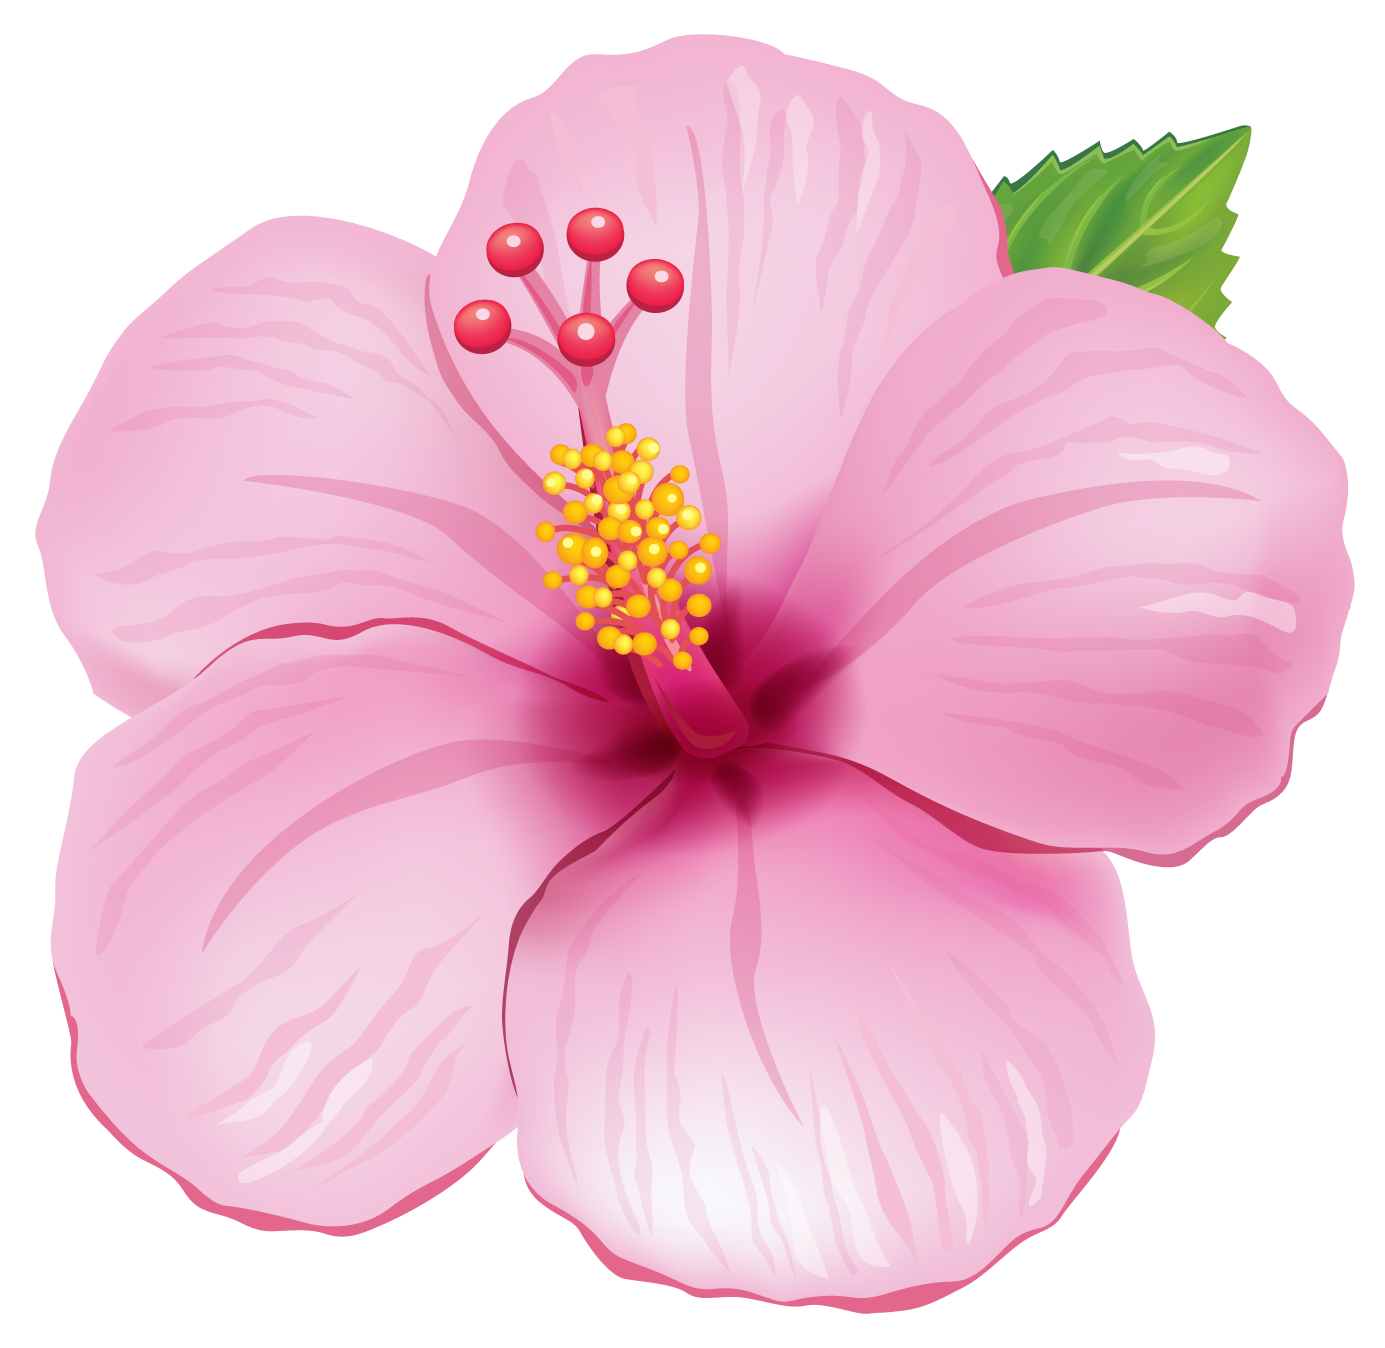 Clipart dtgtdg image royalty free Free collection of Flowers clipart png. Download transparent clip ... image royalty free